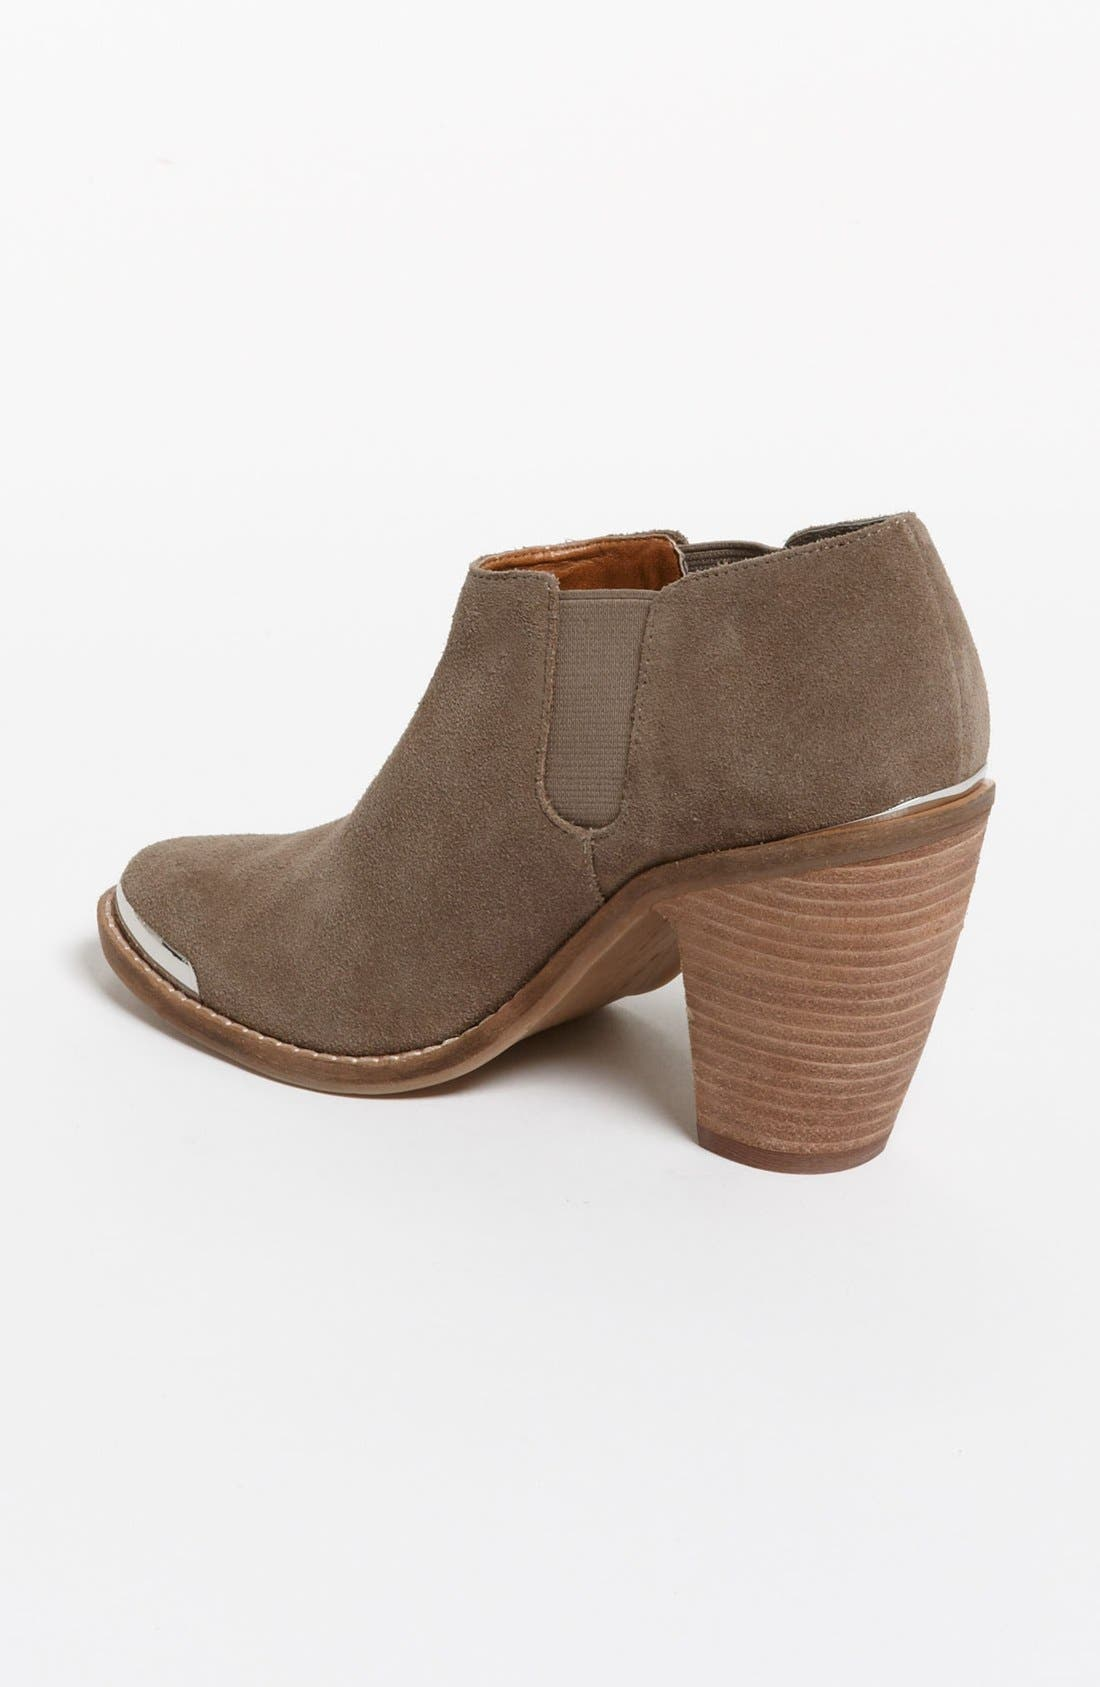 DV by Dolce Vita 'Carlin' Bootie,                             Alternate thumbnail 2, color,                             Taupe Suede